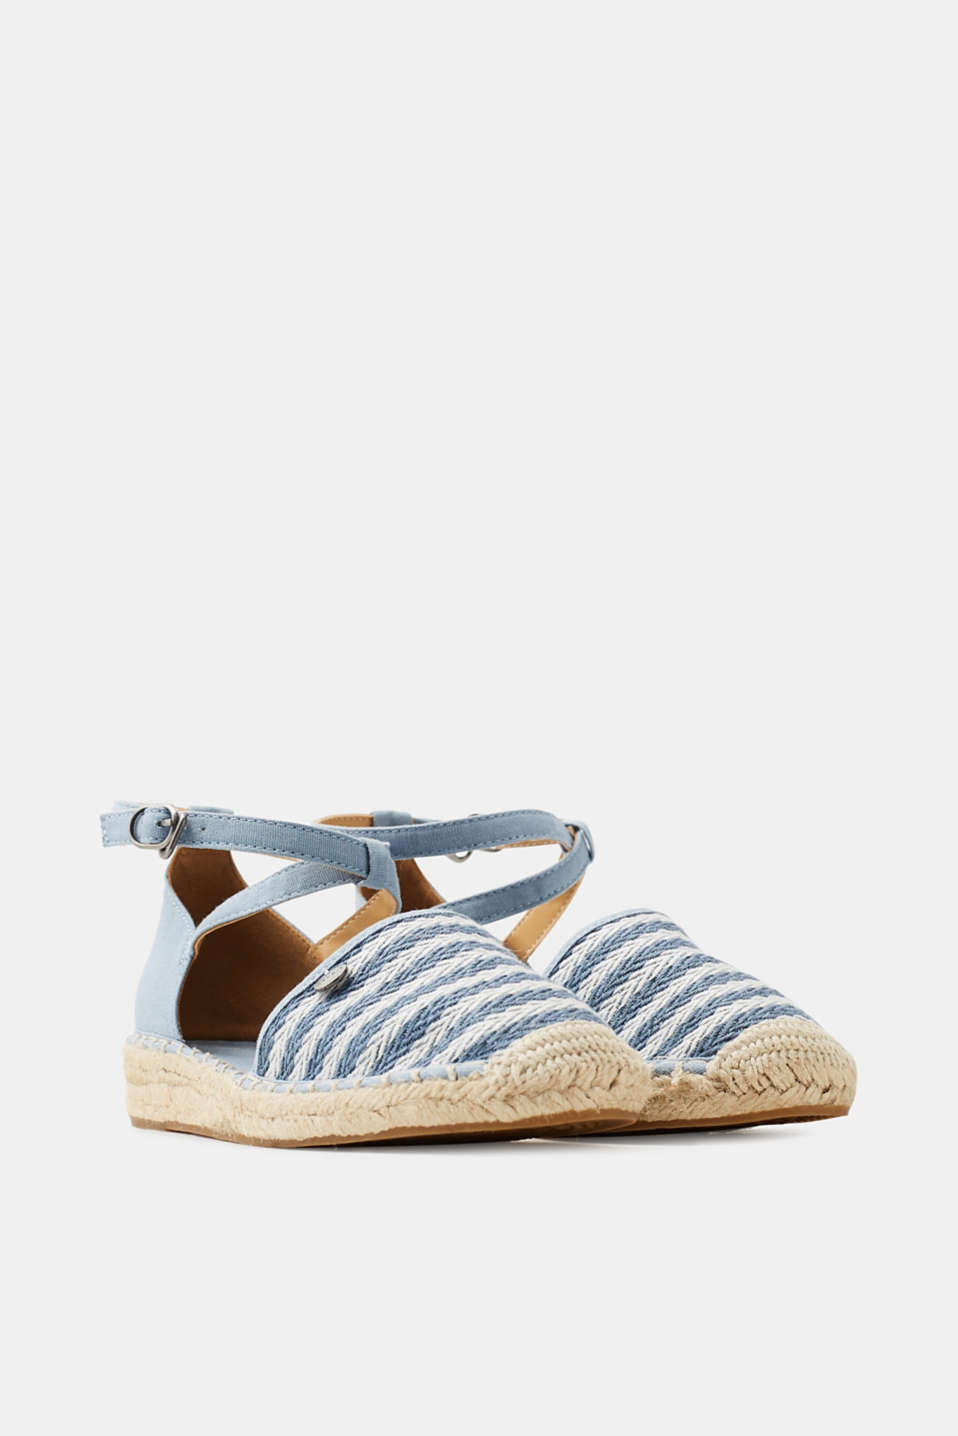 Espadrilles with a striped pattern